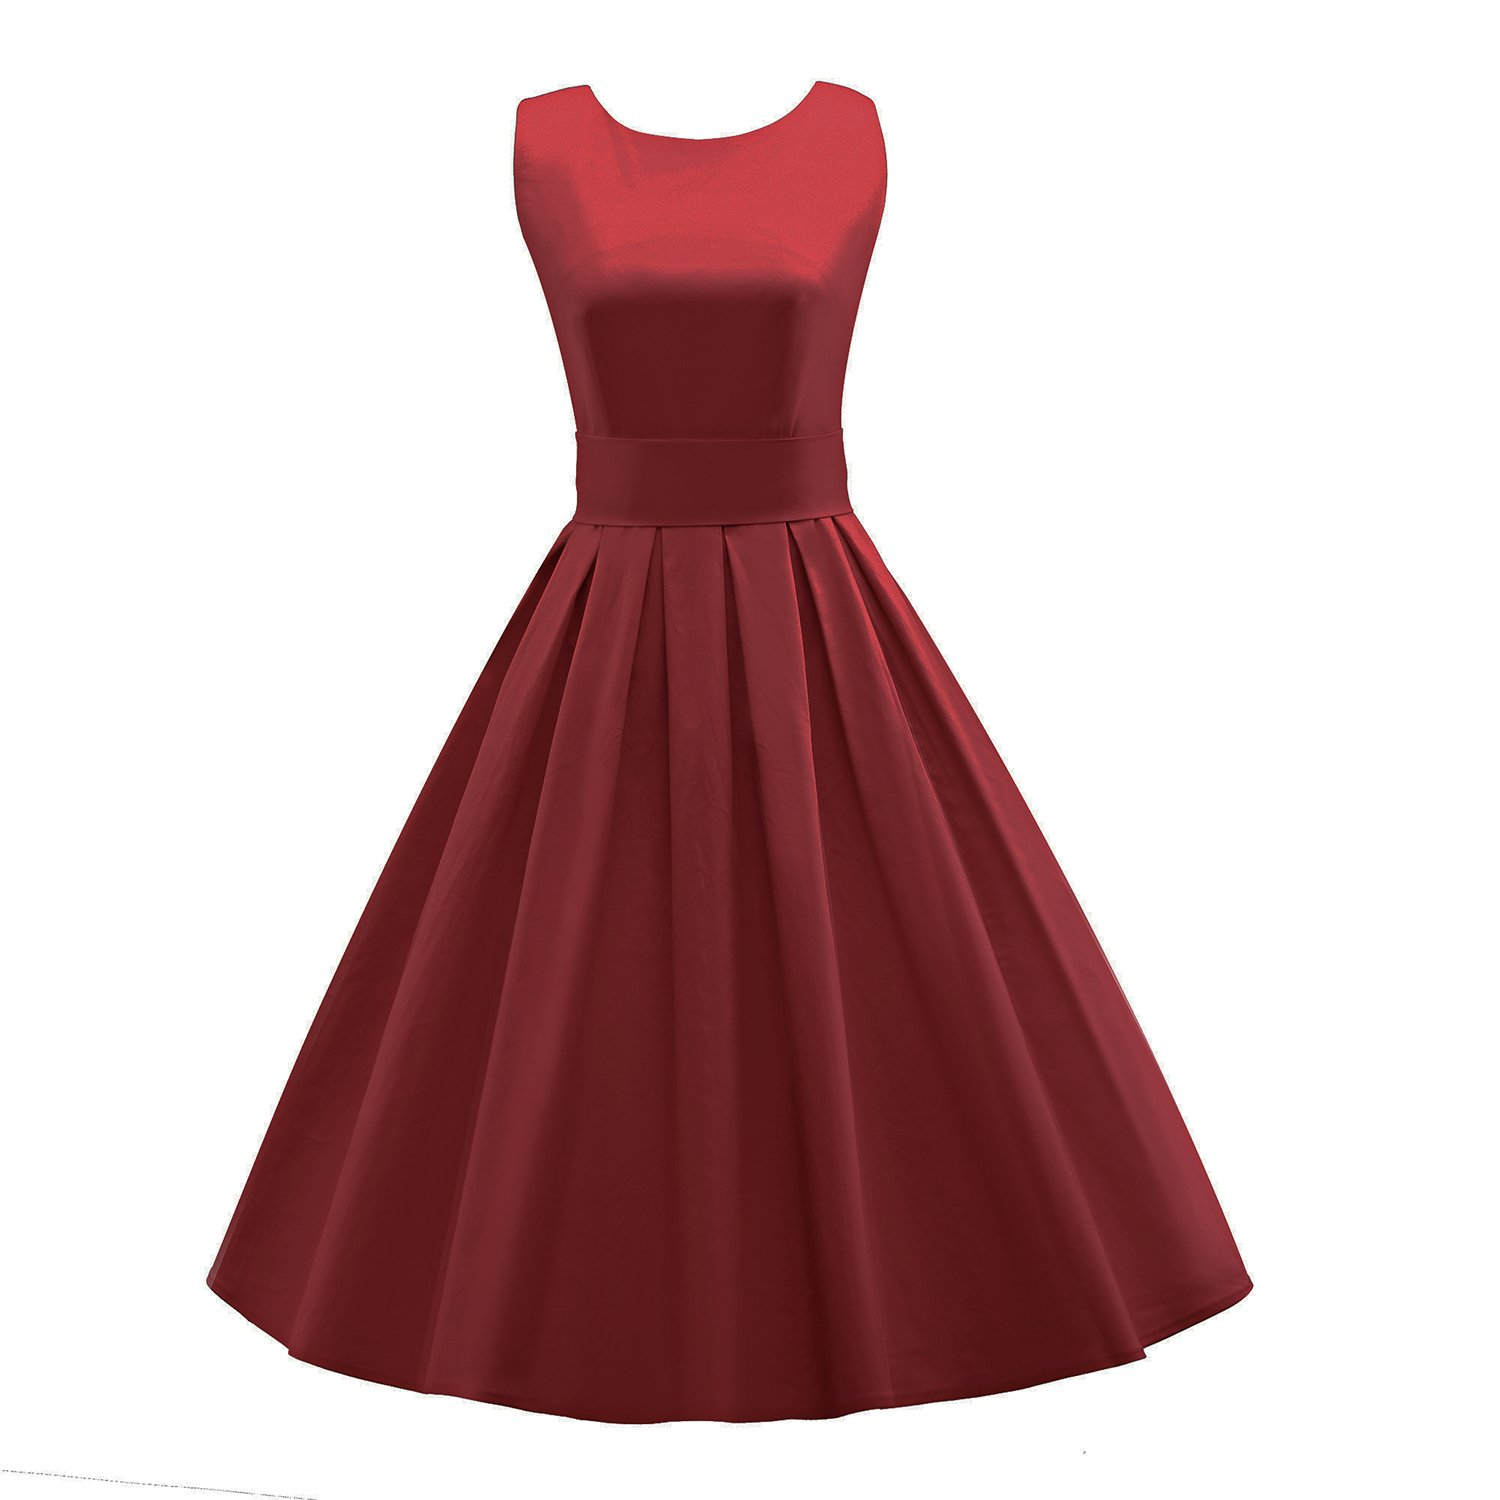 Luouse Lana Vintage 1950 S Inspired Rockabilly Swing Dress